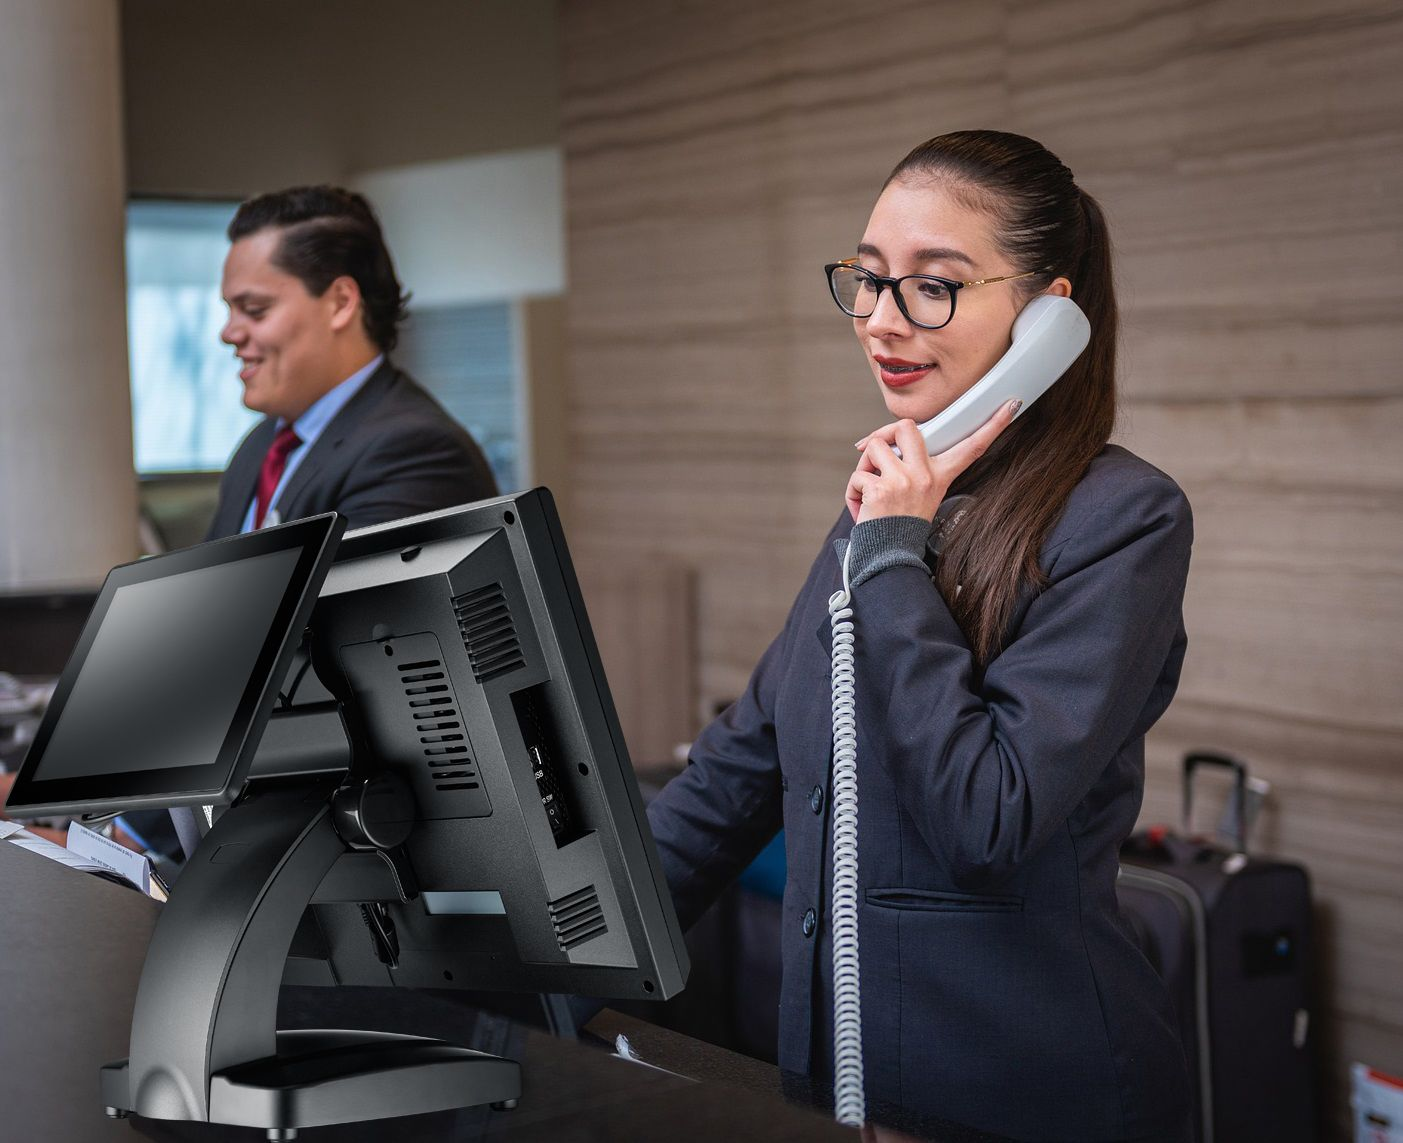 TYSSO provides 17-inch Full Flat Touch Screen POS System for hospitality service